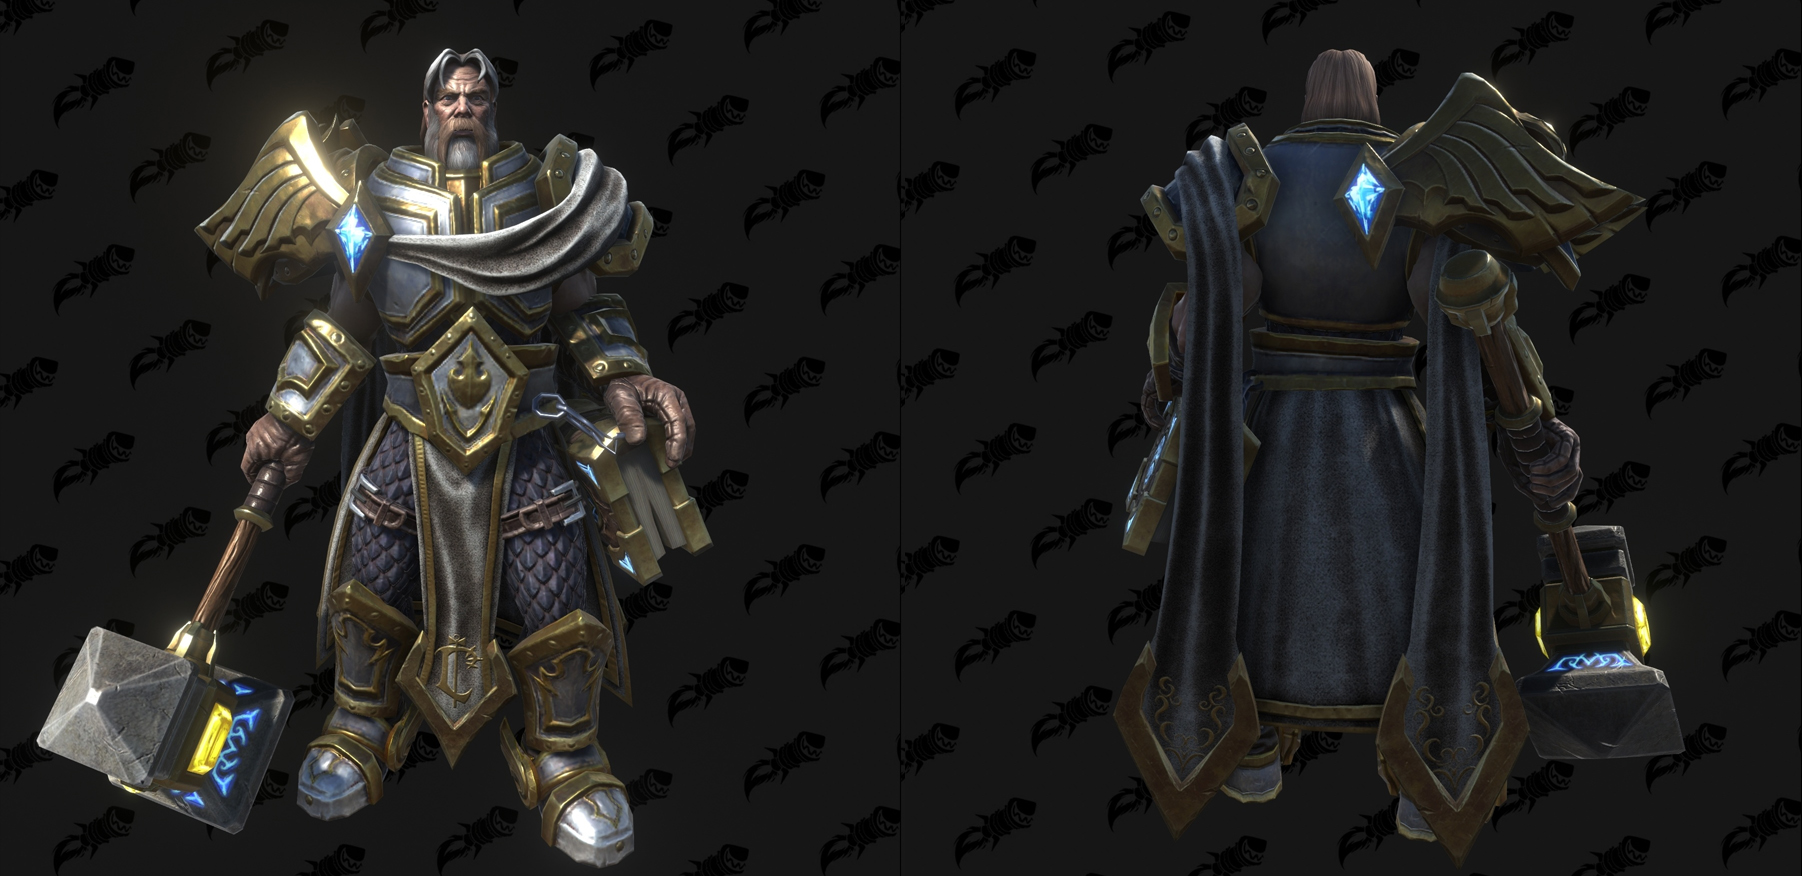 Modèle Warcraft III Reforged : Uther